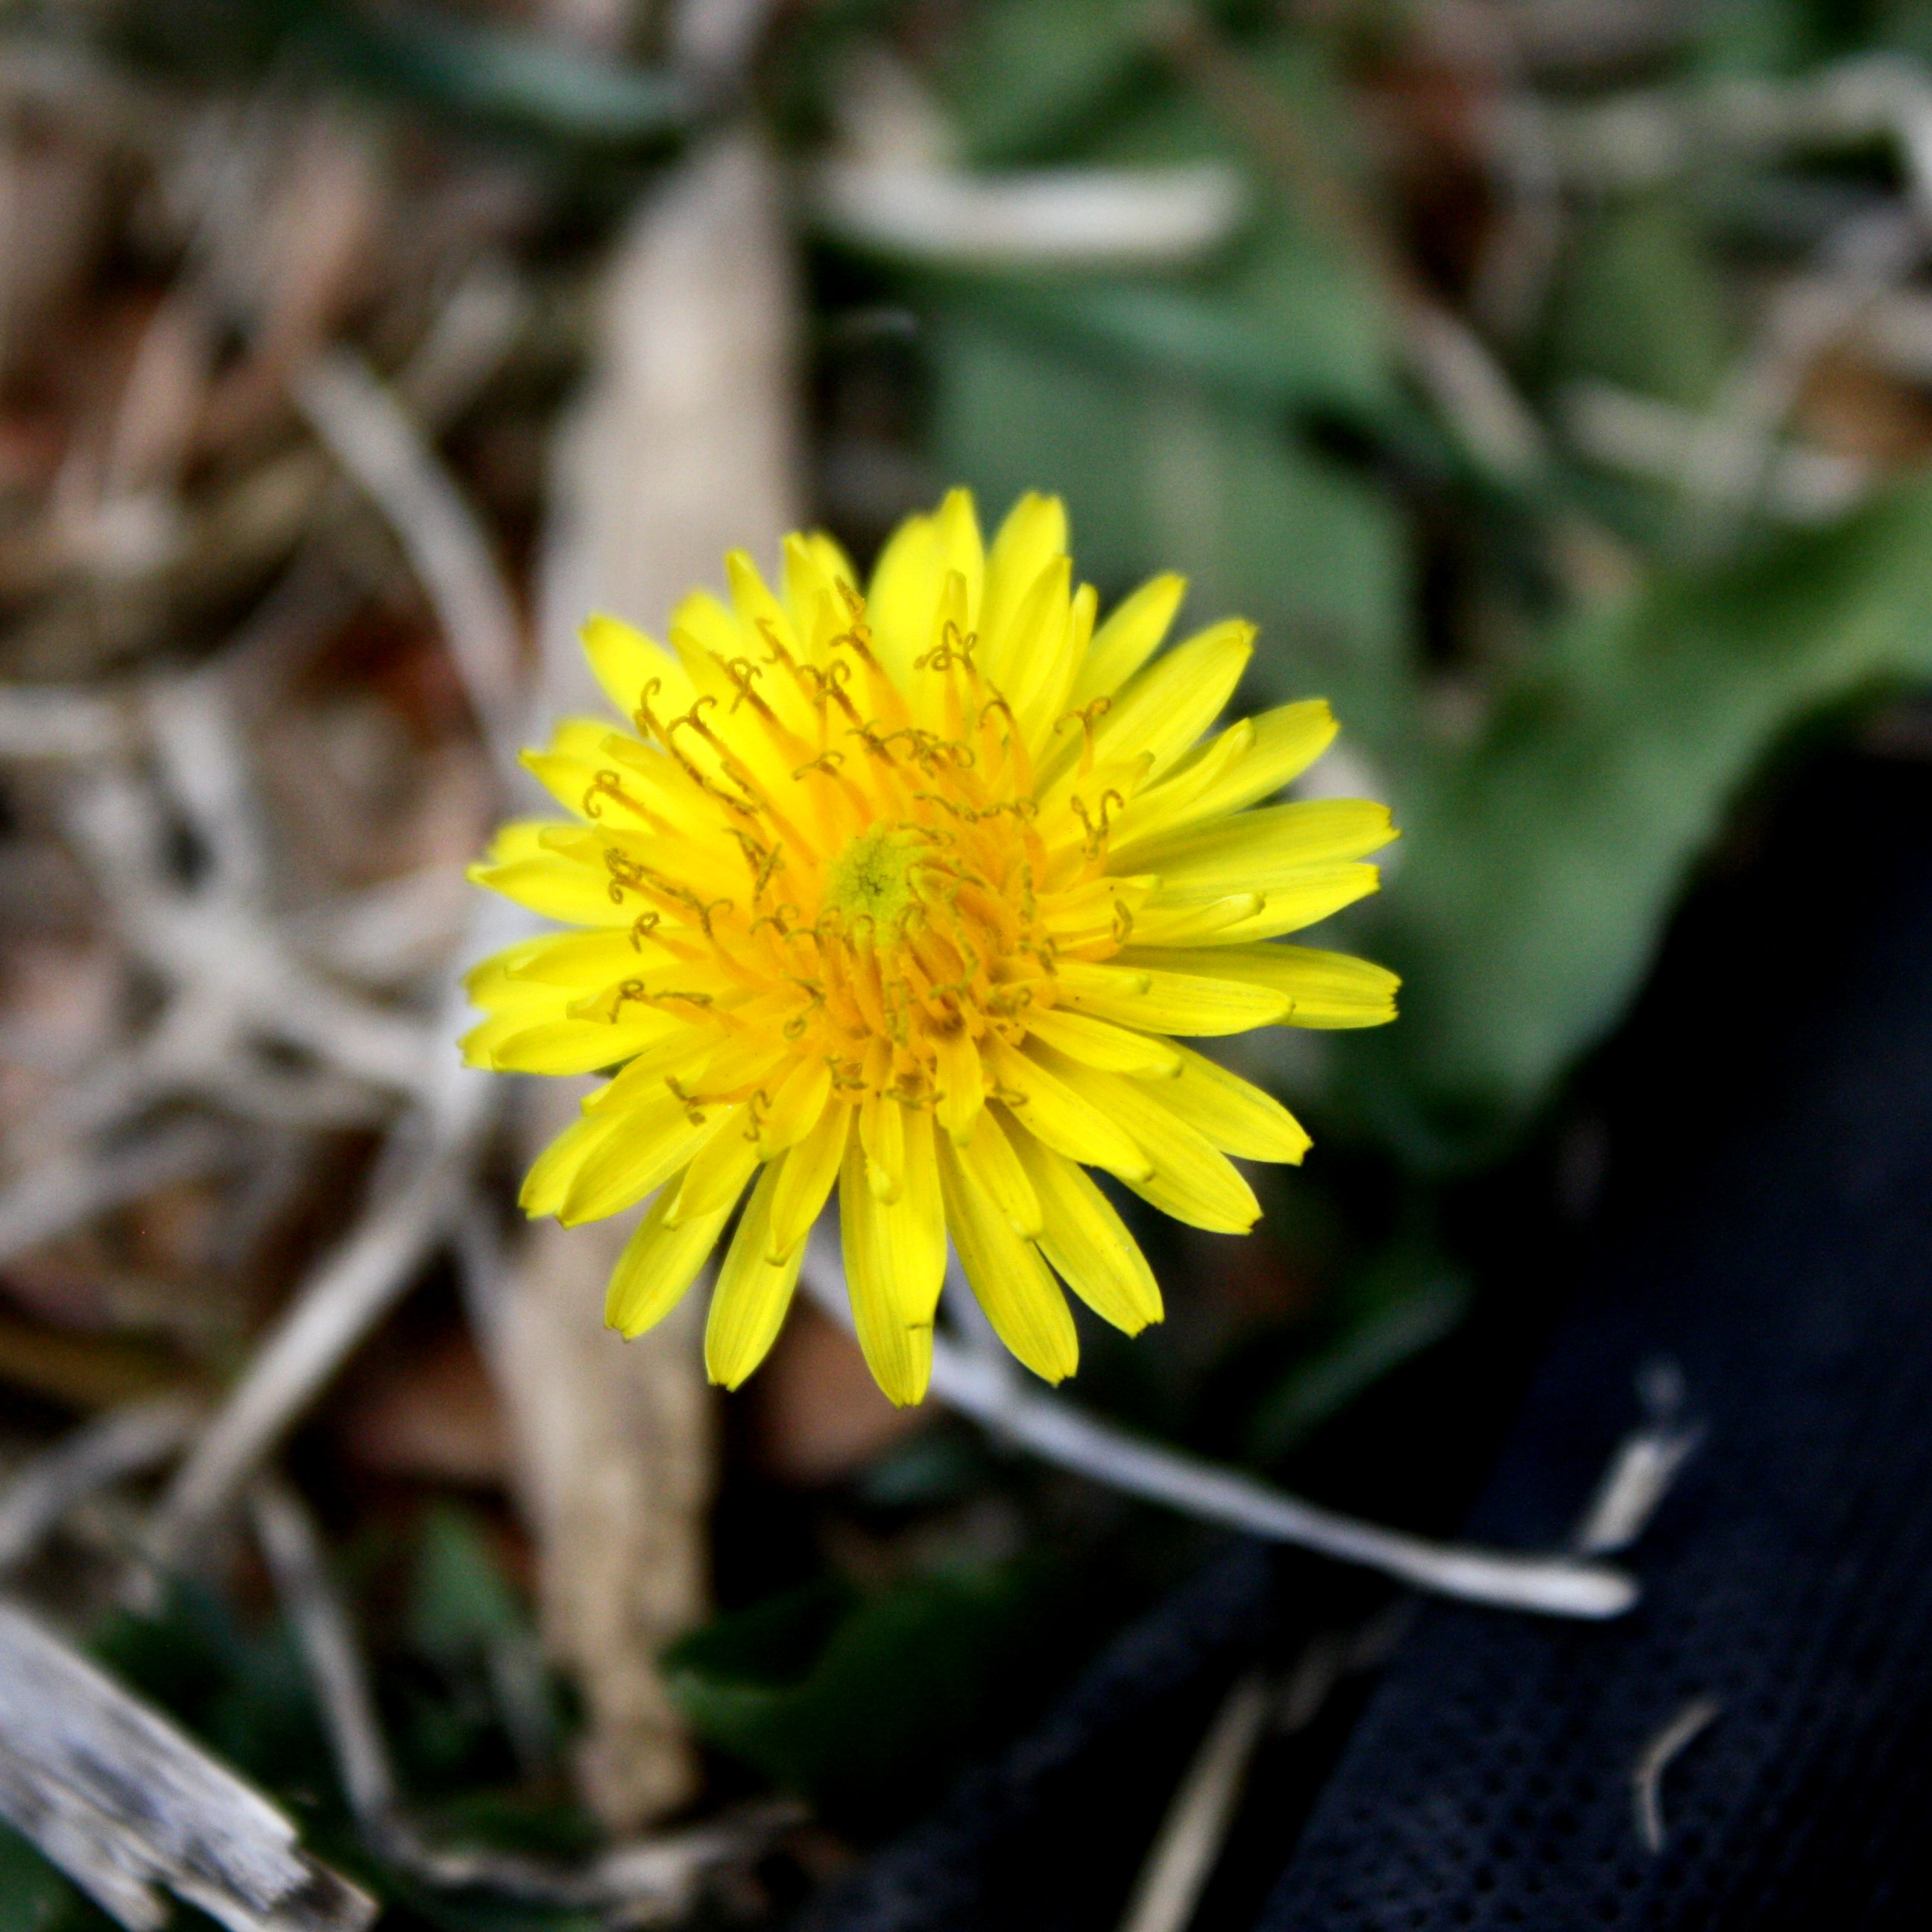 Dandelion Flower Close Up Picture Free graph